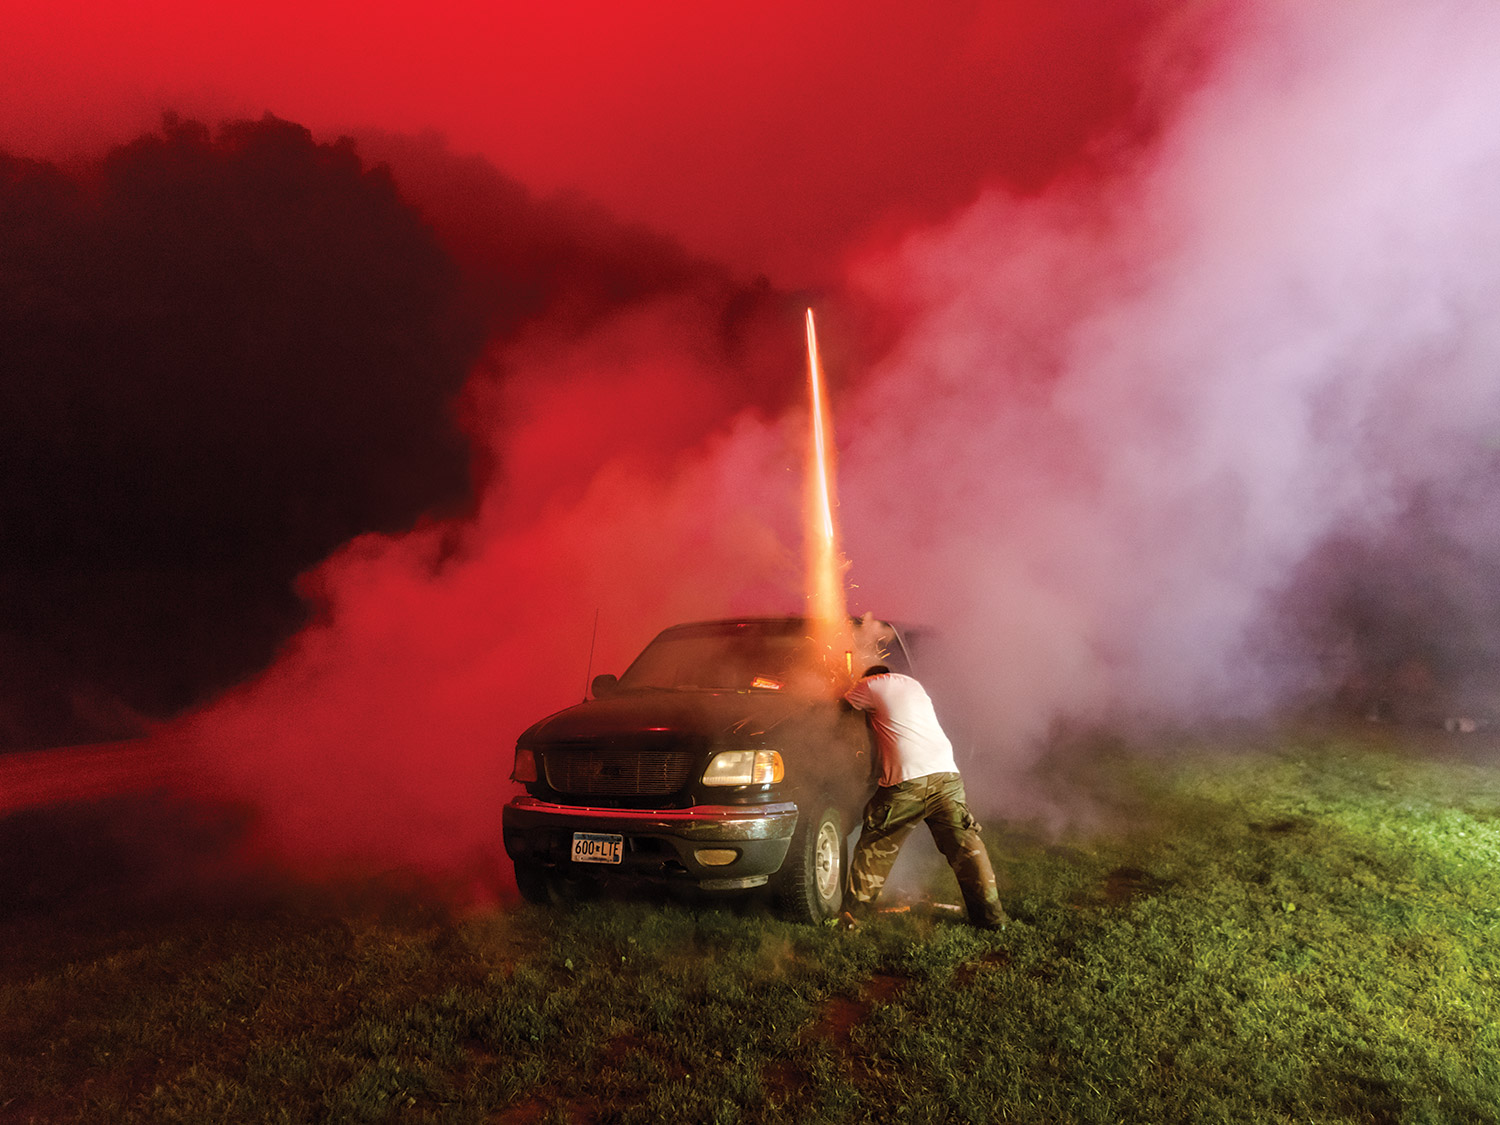 This pyrotechnics expert turned his Minnesota backyard into a DIY fireworks testing ground